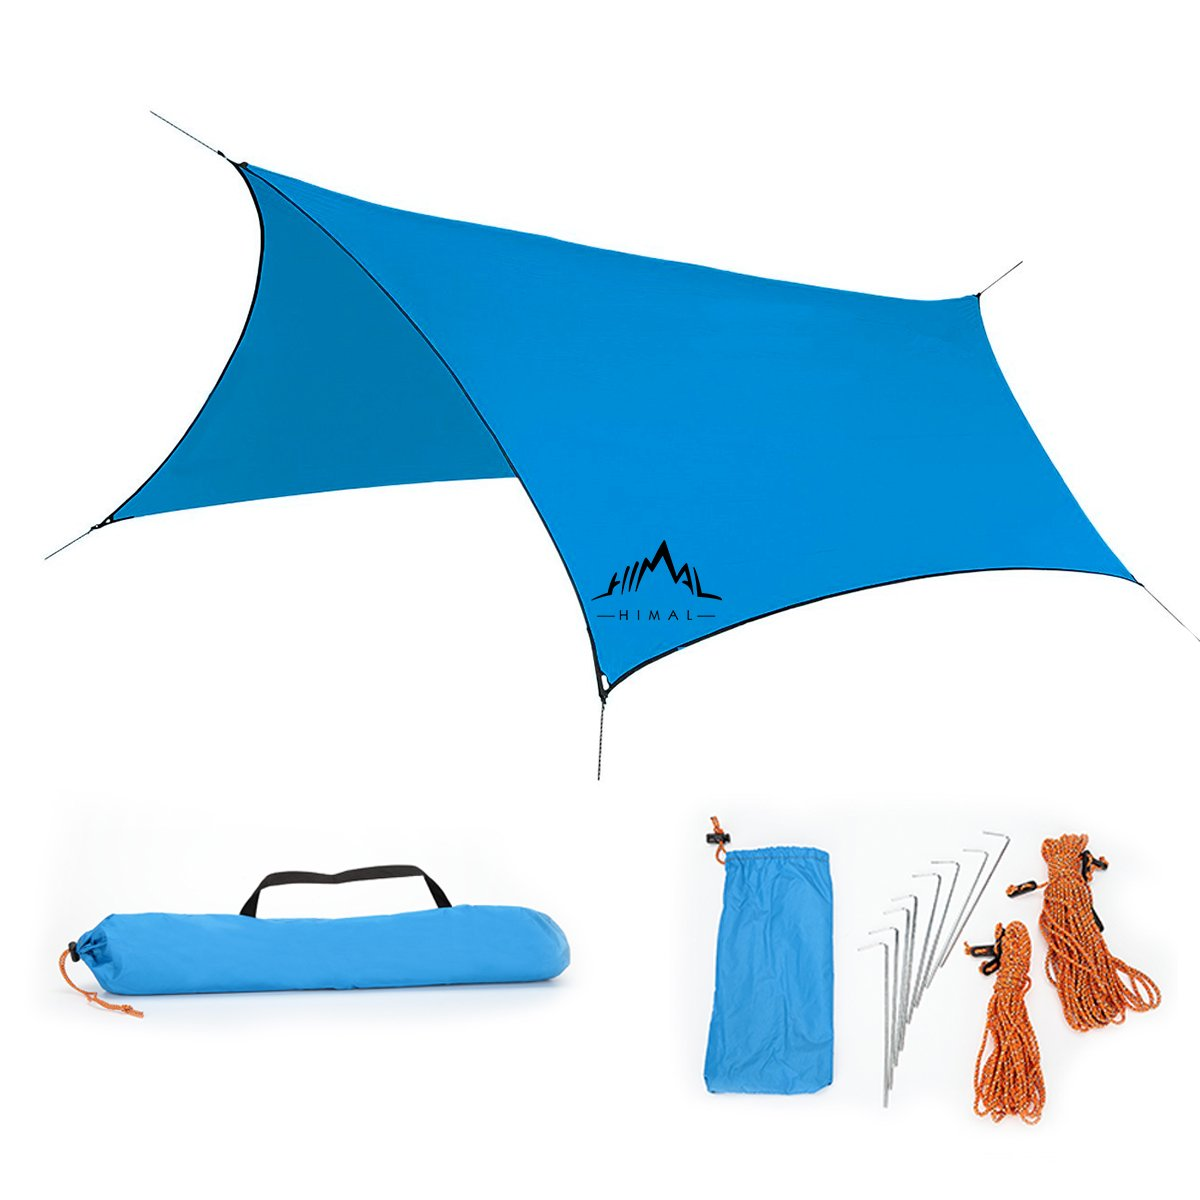 Amazon.com  [C&ing Essential] Himal 10ftX8.5ft Waterproof Sunshade Tent Rain Fly Tent Tarp (Blue)  Sports u0026 Outdoors  sc 1 st  Amazon.com : fly tent - memphite.com